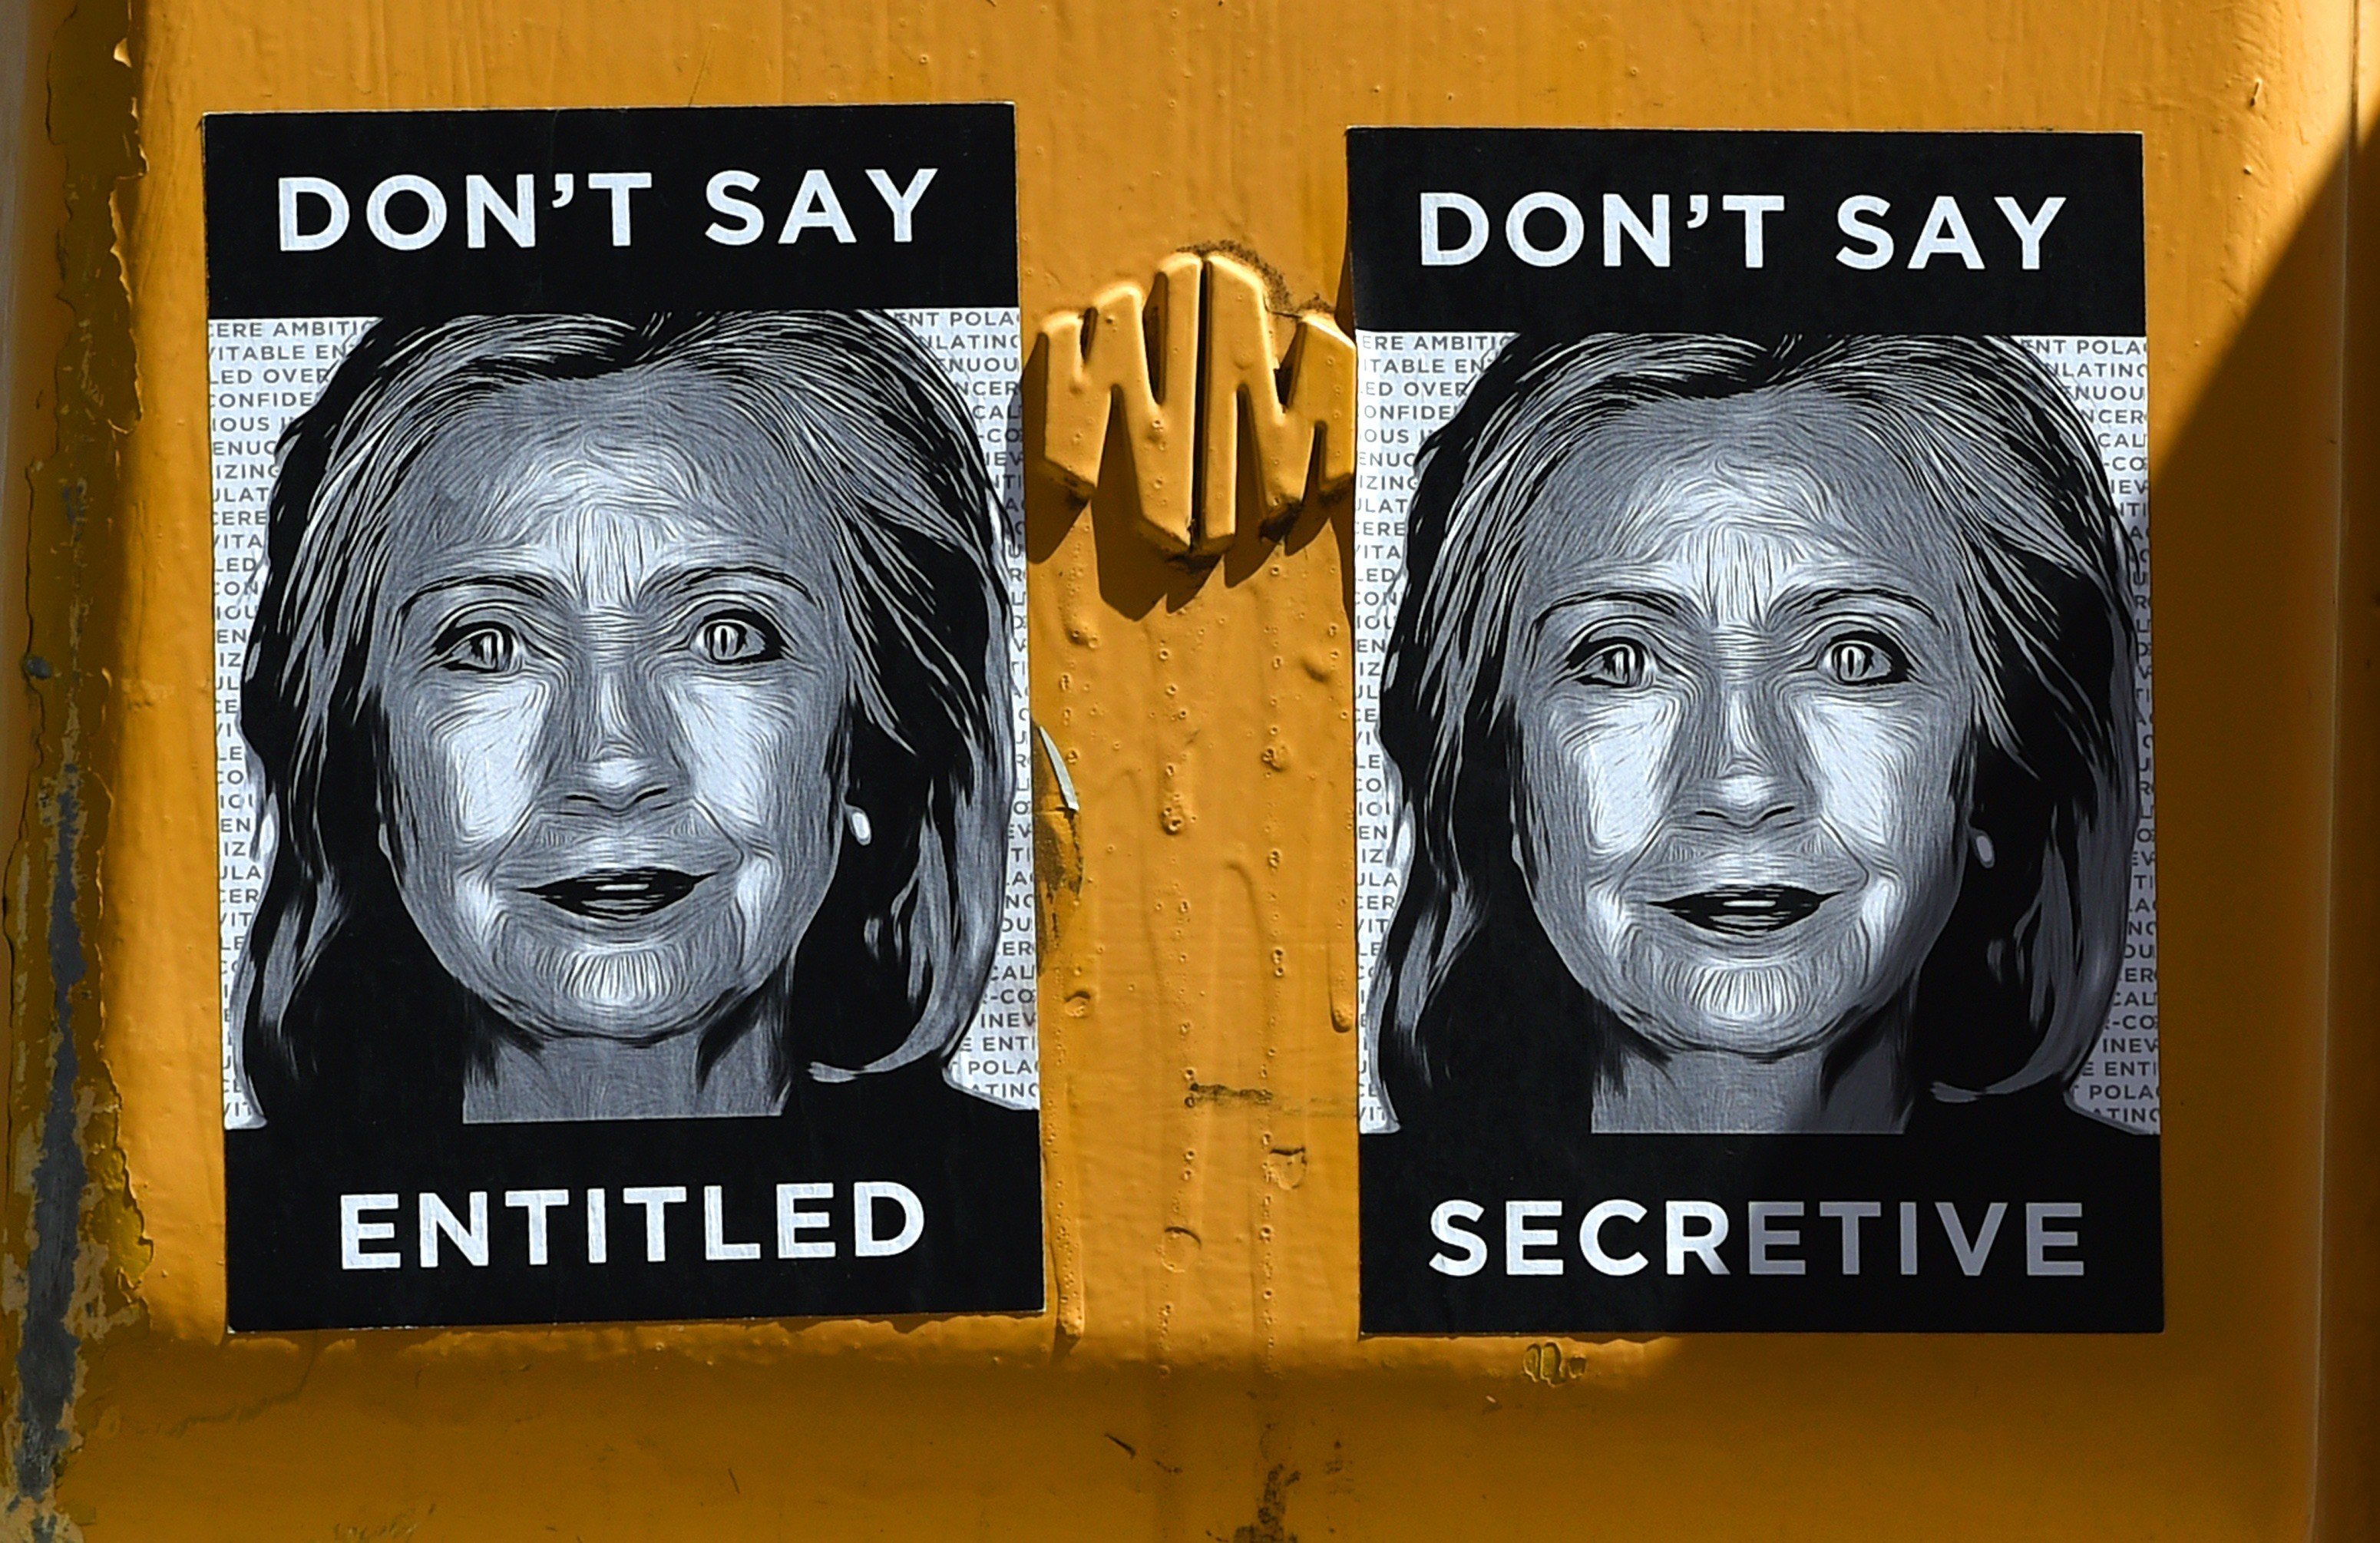 Anti-Hillary Clinton posters are seen on a sign post in Brooklyn on April 16, 2015, just blocks from Clintons new Brooklyn , New York 2016 presidential campaign headquarters . The posters feature illustrations of Clintons face along with slogans, including: Dont Say Secretive and Dont Say Entitled. AFP PHOTO / TIMOTHY A. CLARY